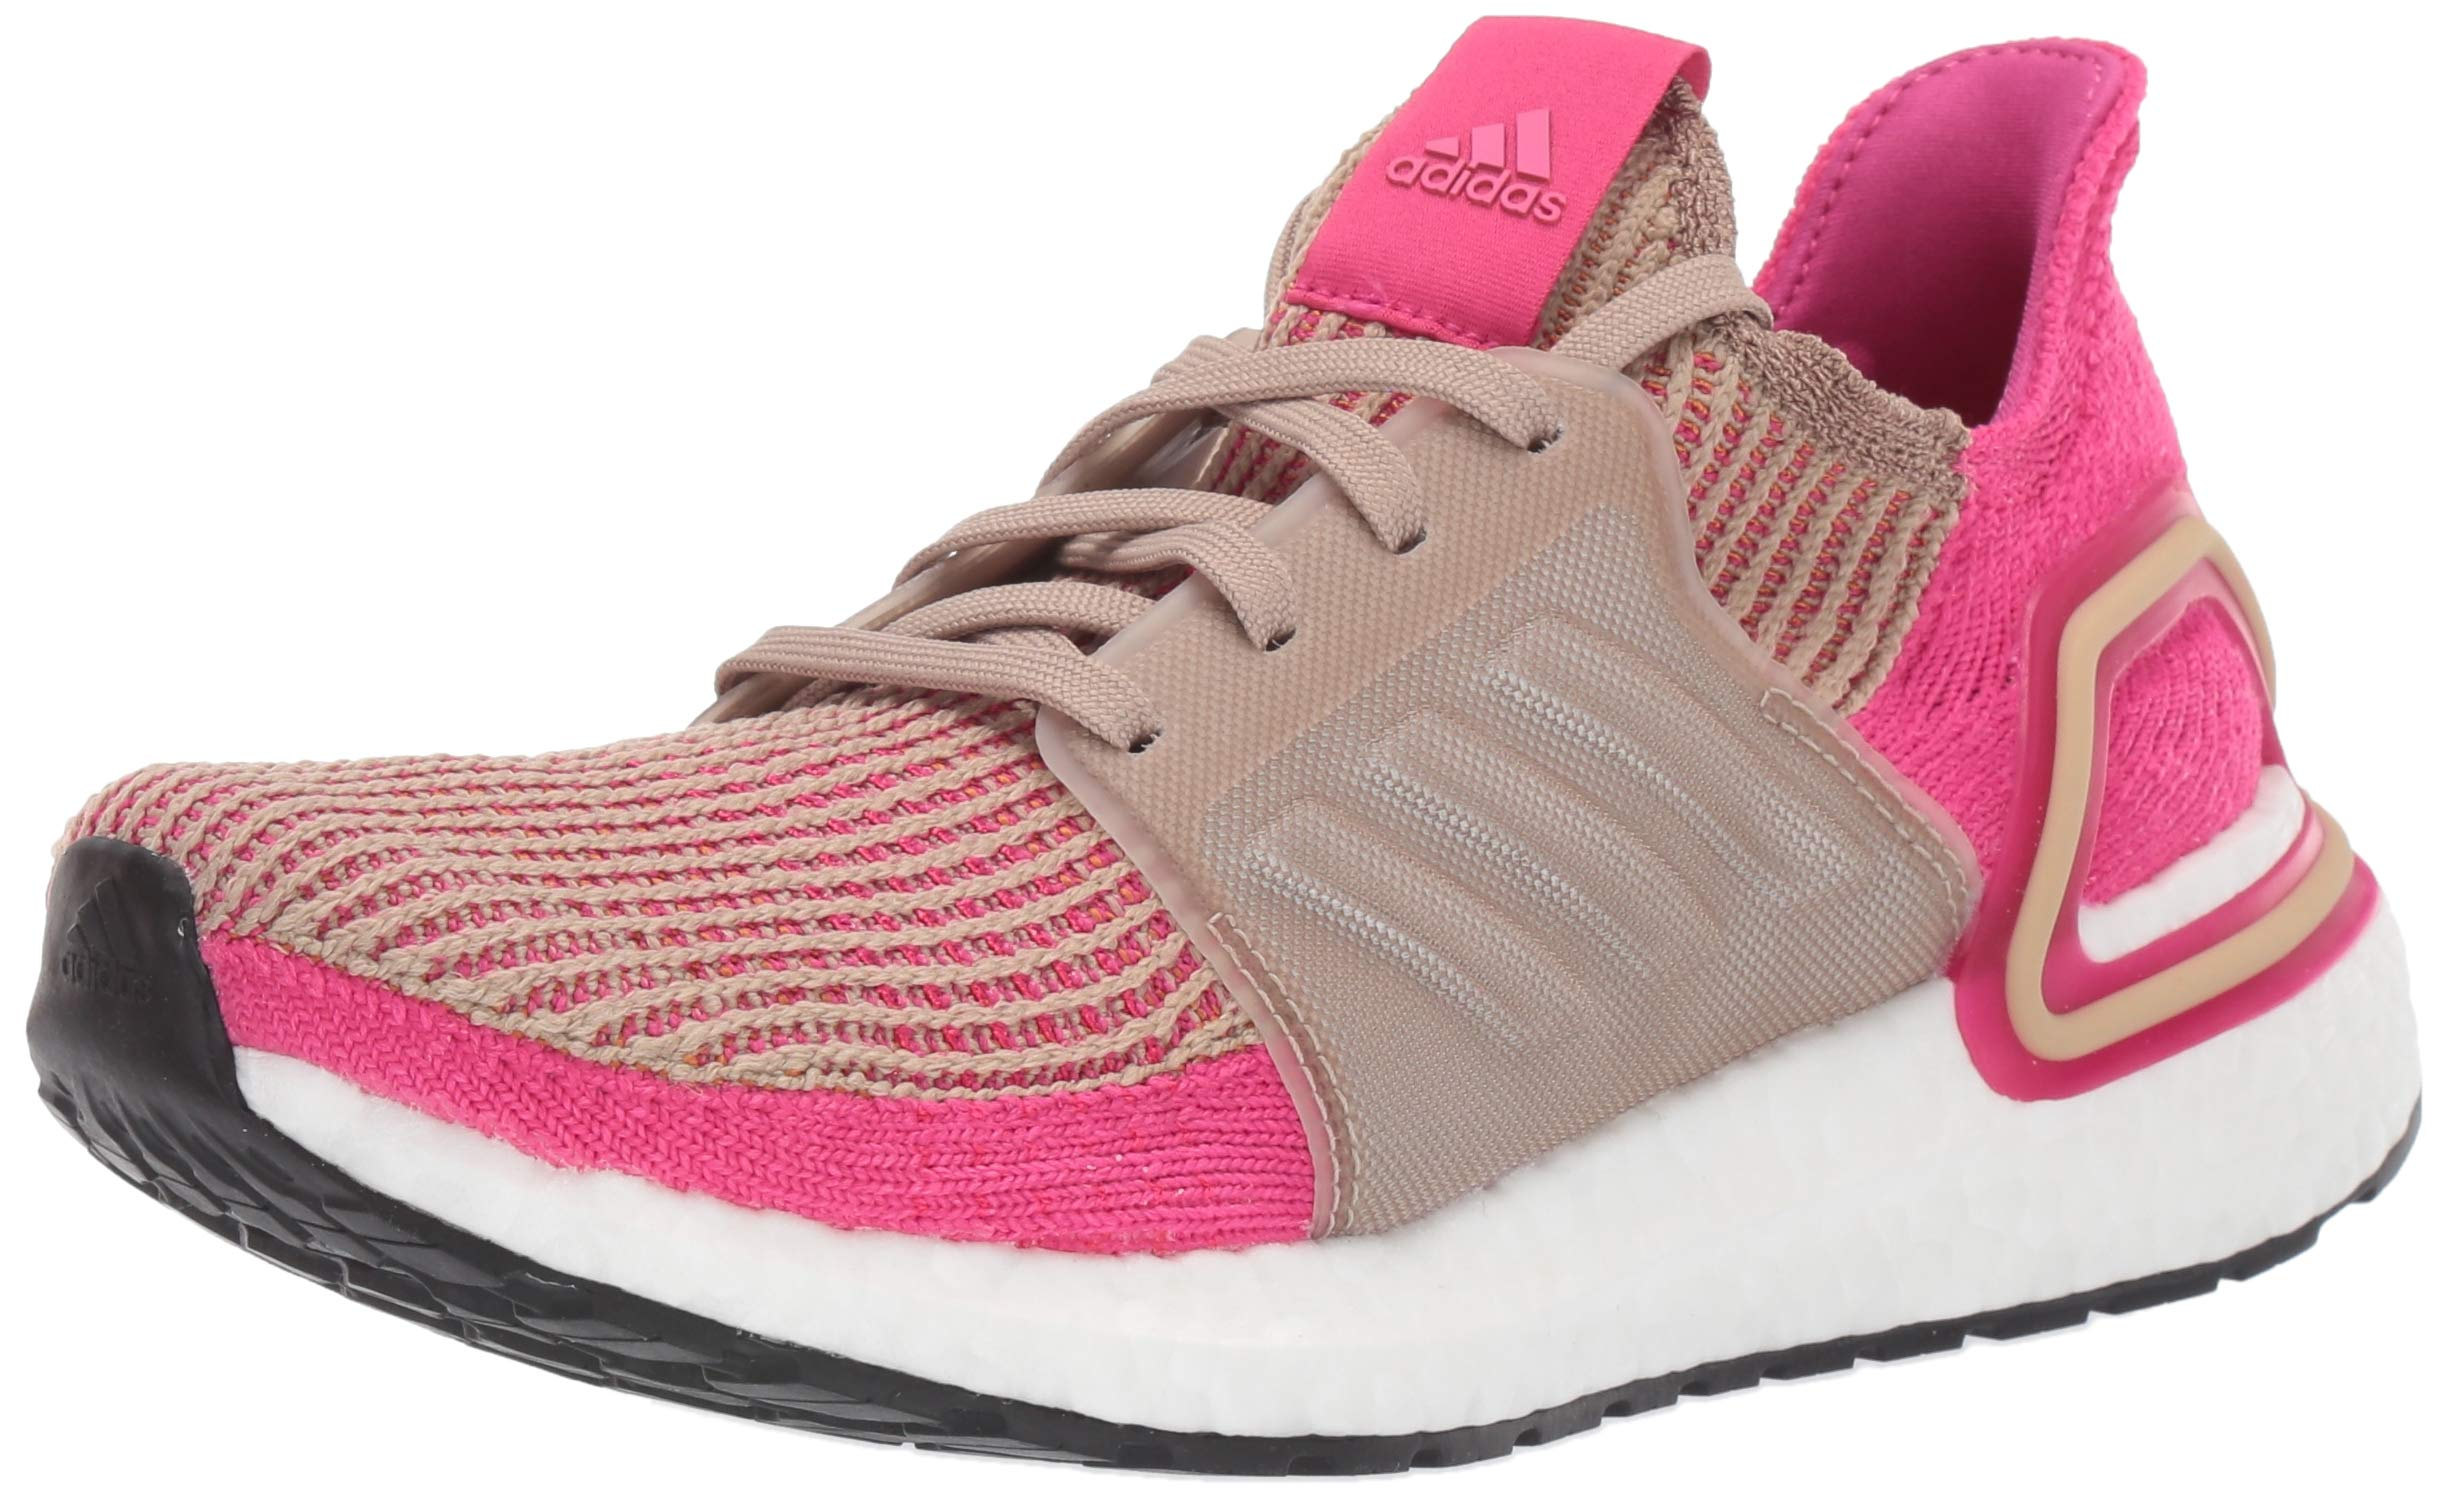 adidas Women's Ultraboost 19 Running Shoe, Trace Khaki/Real Magenta/Shock Pink, 11 M US by adidas